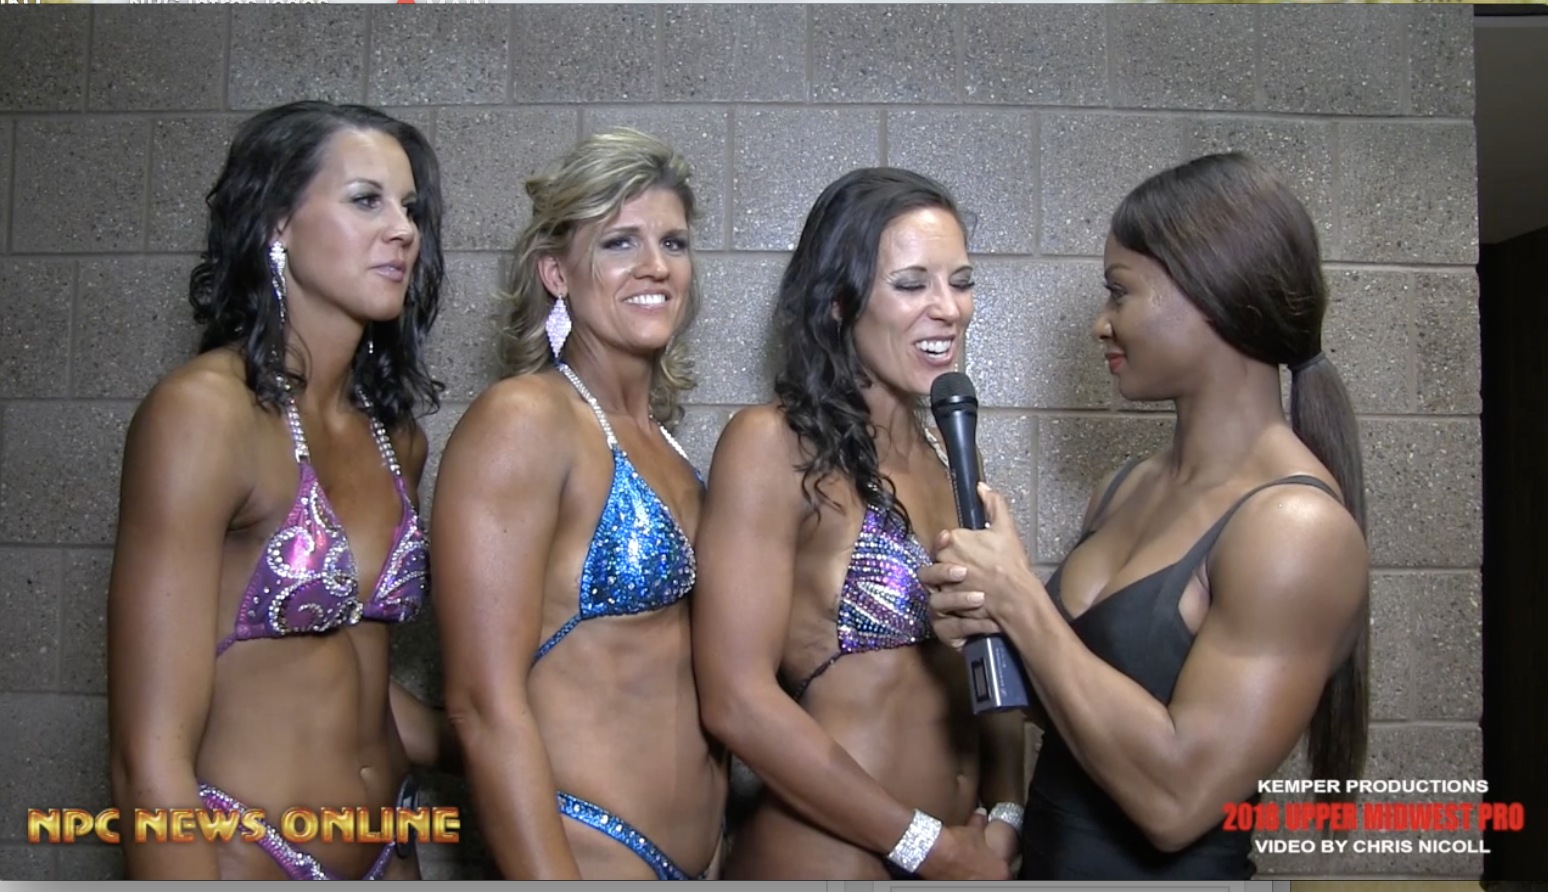 2018 NPC Midwest Classic Women's Figure Competitors Interviewed By IFBB Pro Candice Lewis Carter